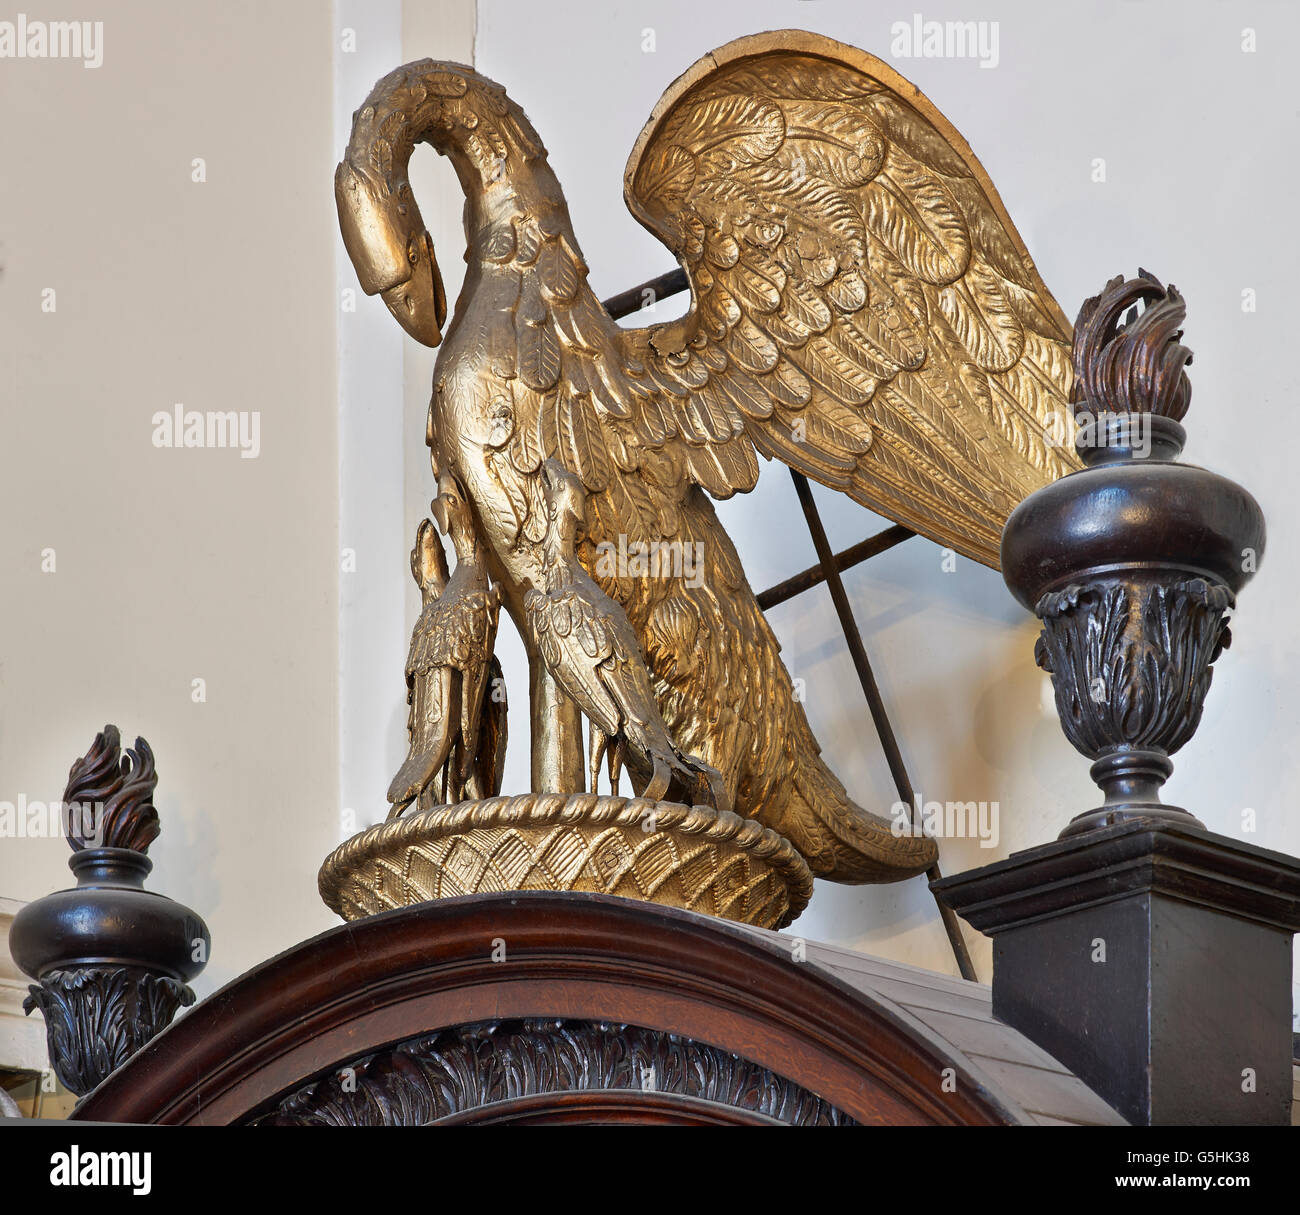 St Martin within Ludgate, church in the City of London, Pelican weathervane Stock Photo